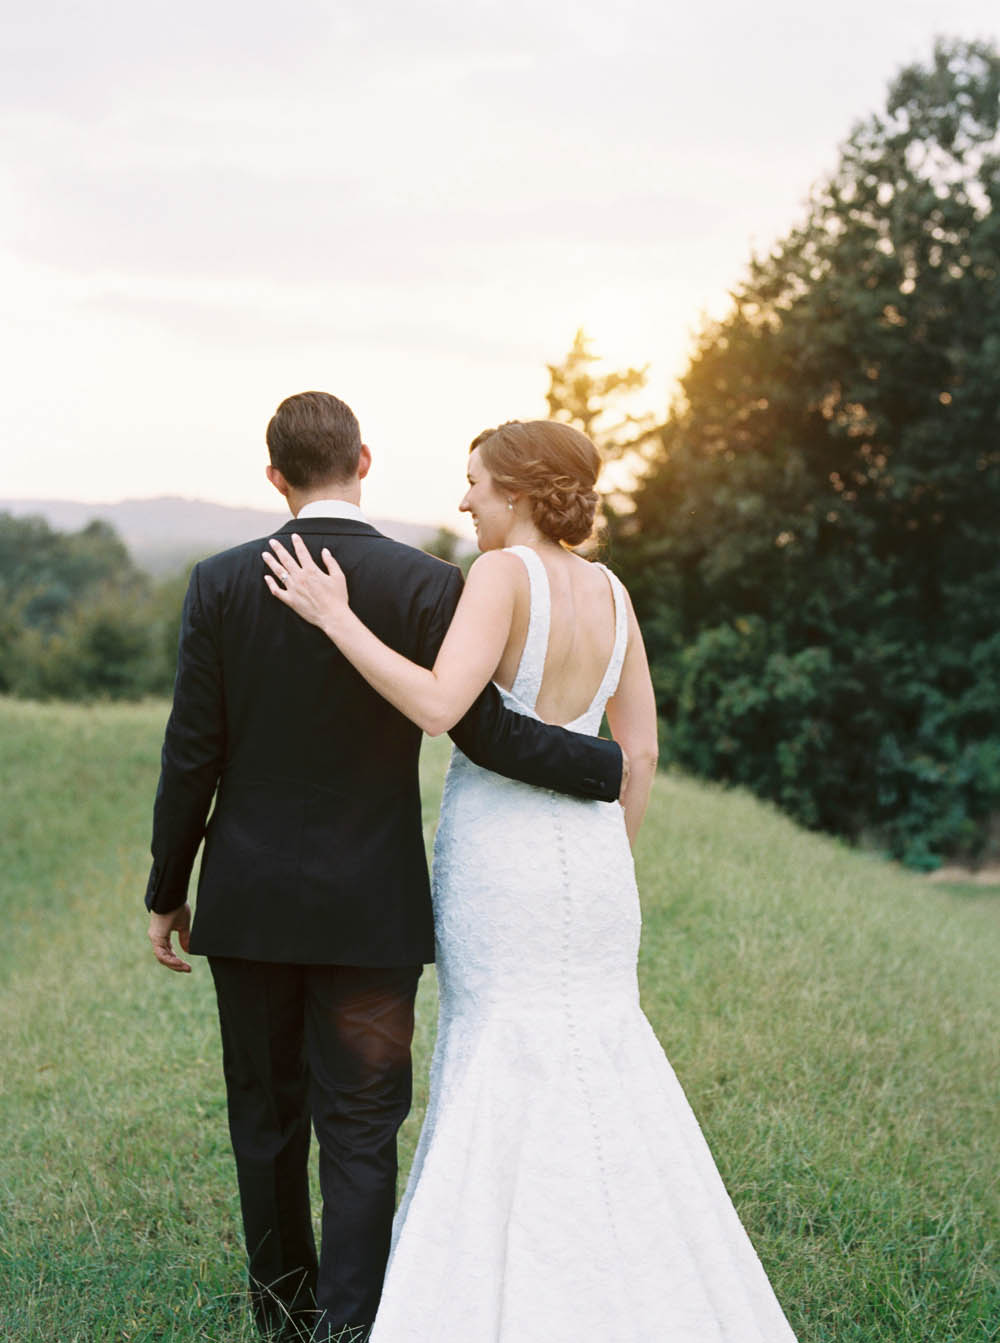 lilac farms at arrington vineyards classic film documentary wedding photographer in franklin real moments photographers ©2016abigailbobophotography-45.jpg